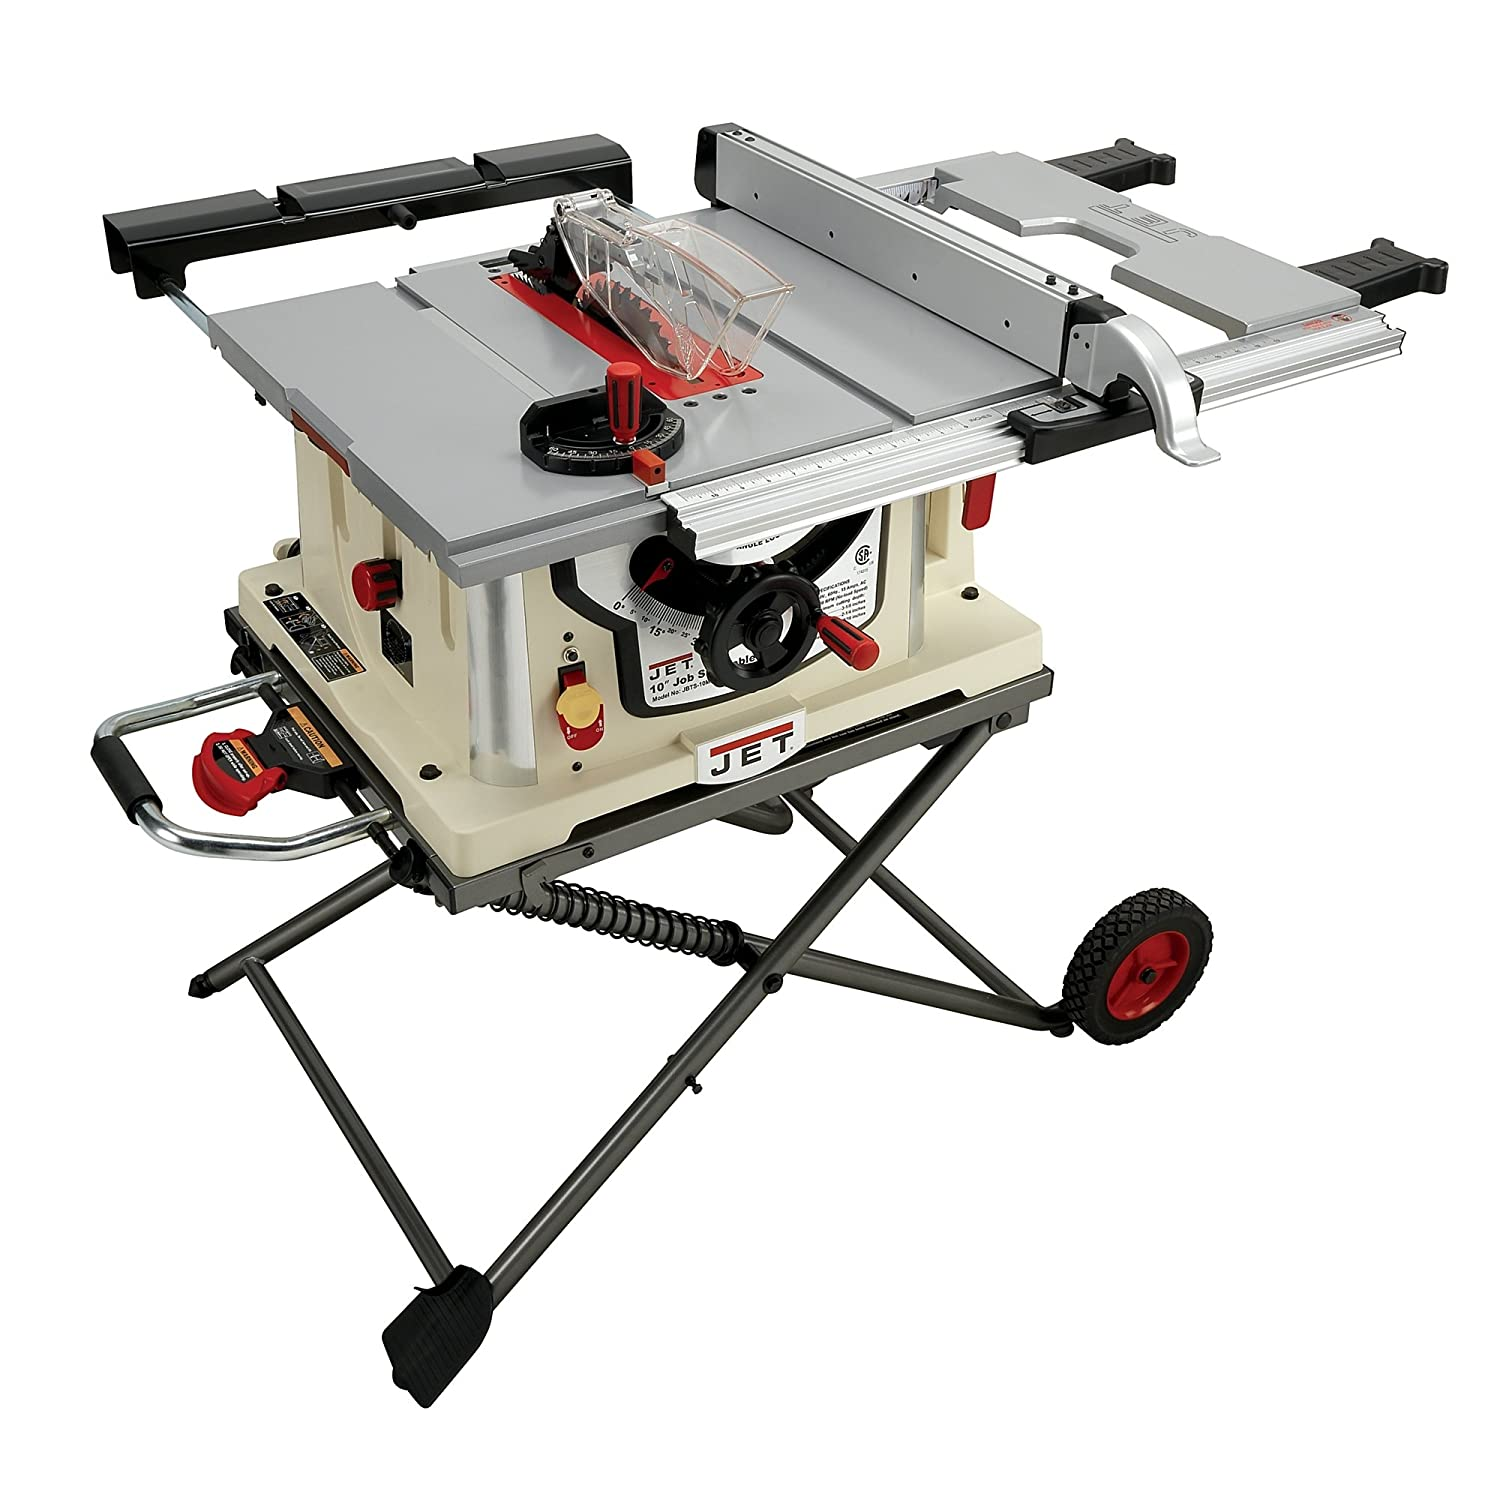 Jet JBTS-10MJS 10-Inch Jobsite Table Saw - Power Table Saws ...